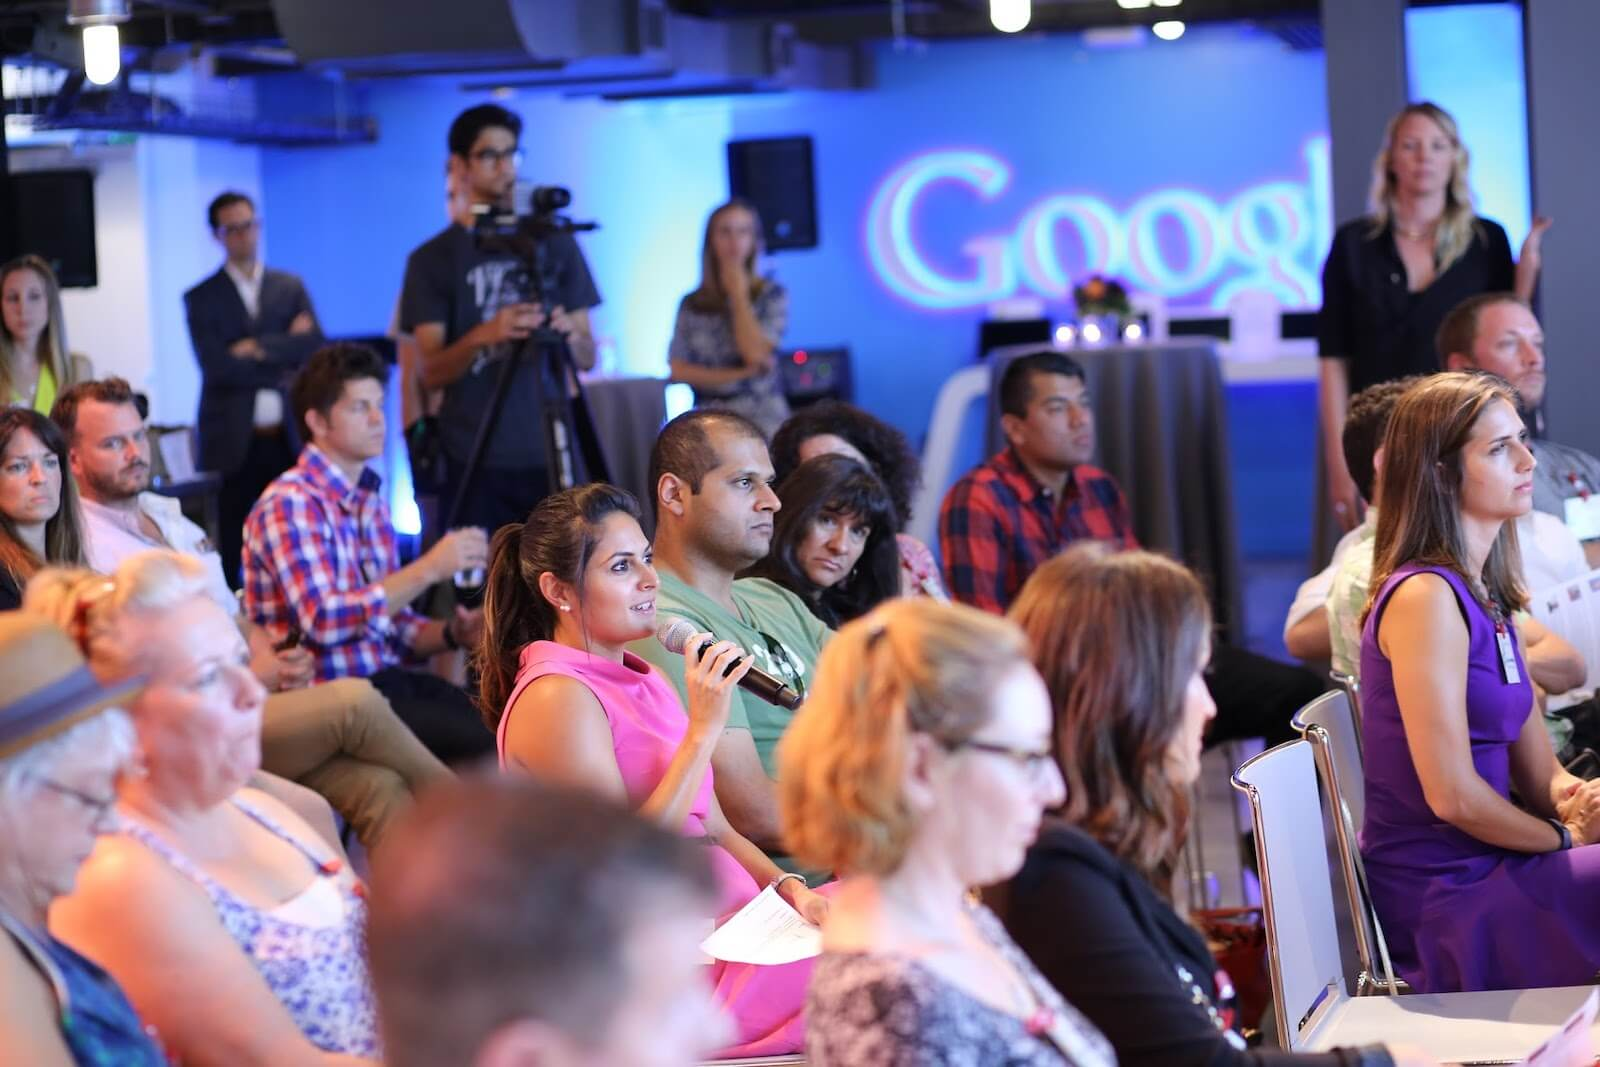 Google Business Leaders event audience